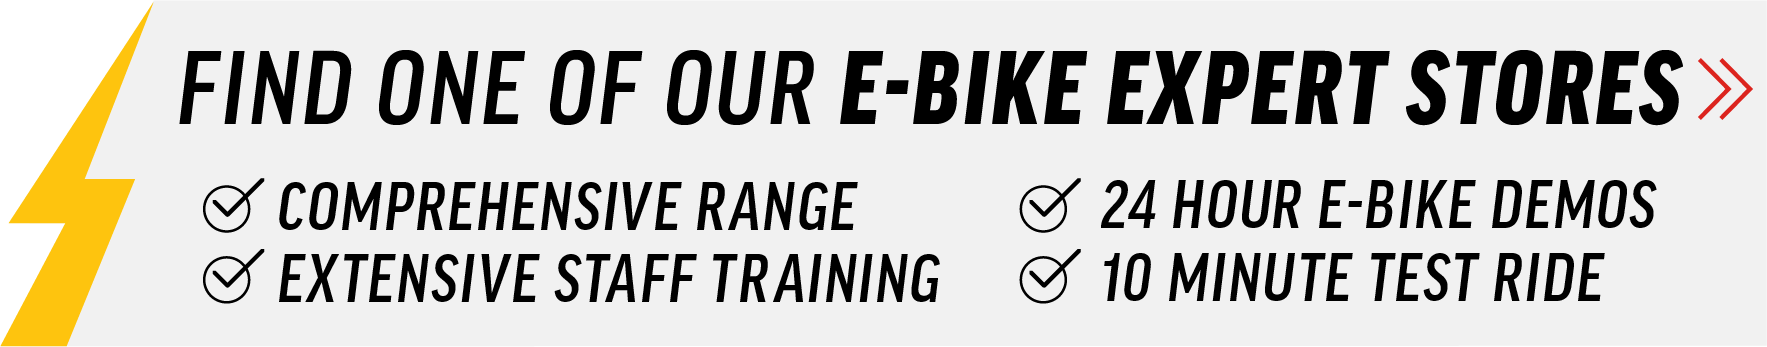 Find A E-Bike Expert Shop